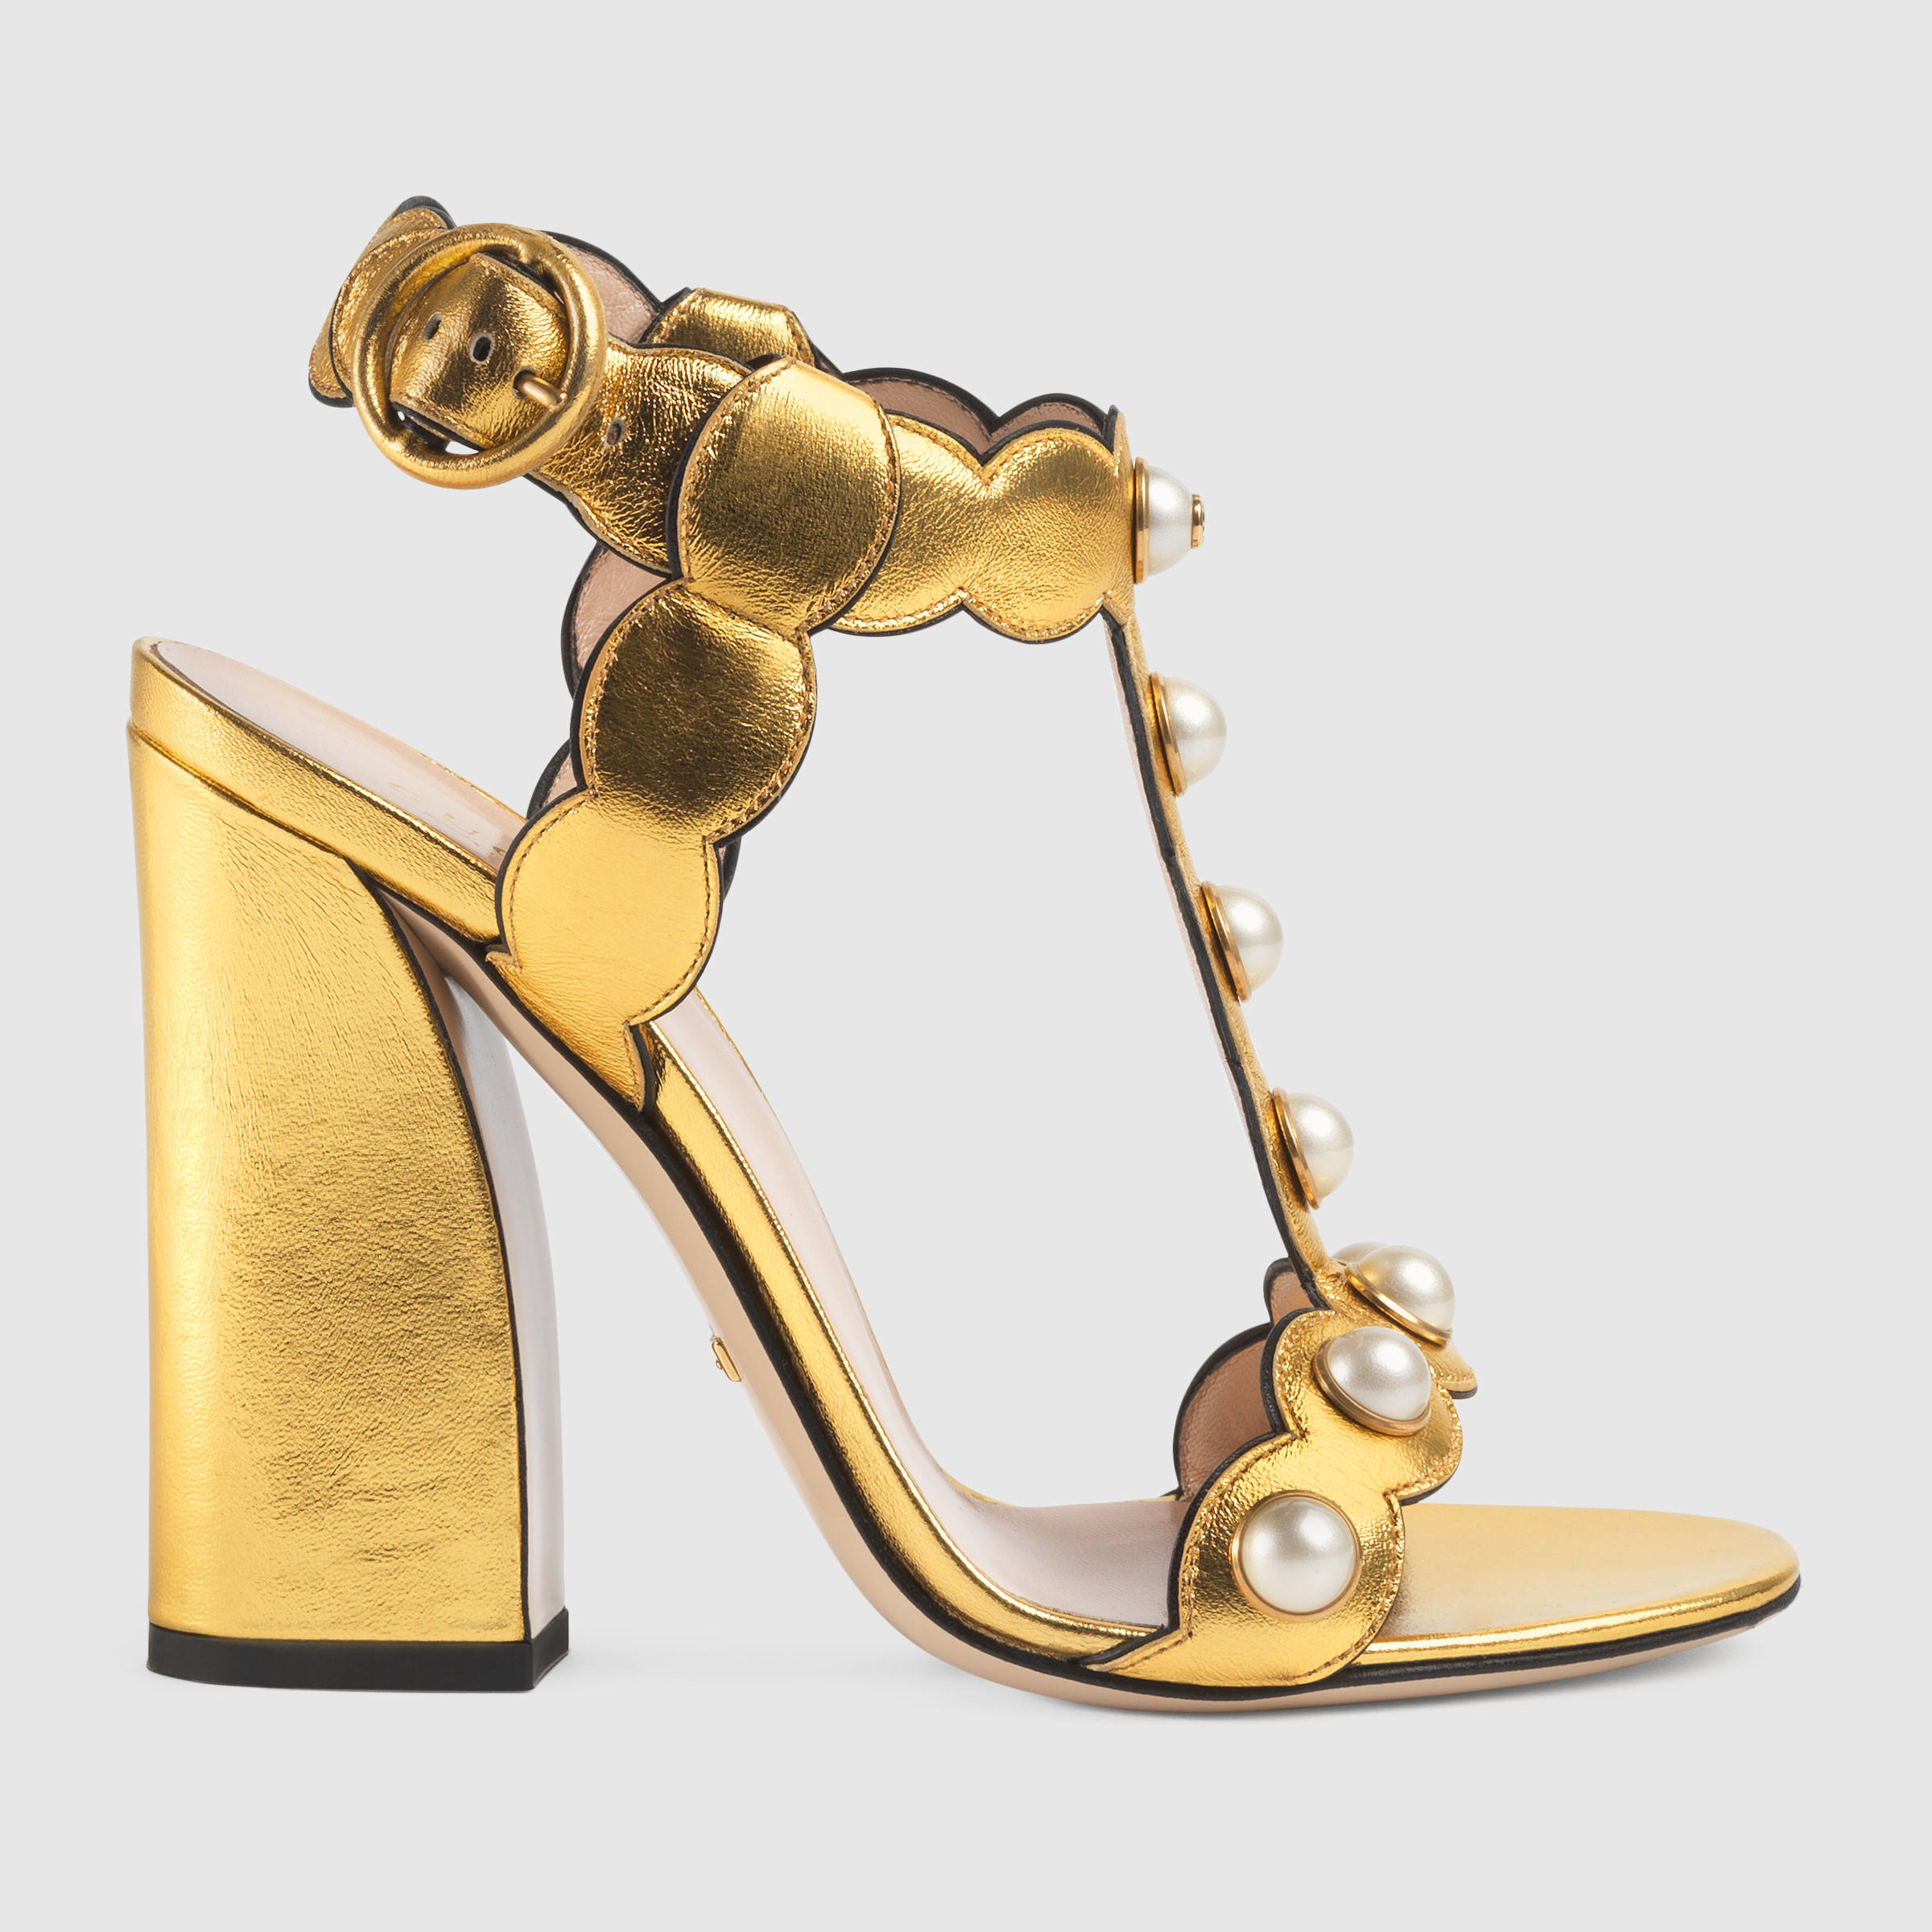 ec9439981e2cad Lyst - Gucci Leather T-strap Sandal in Metallic